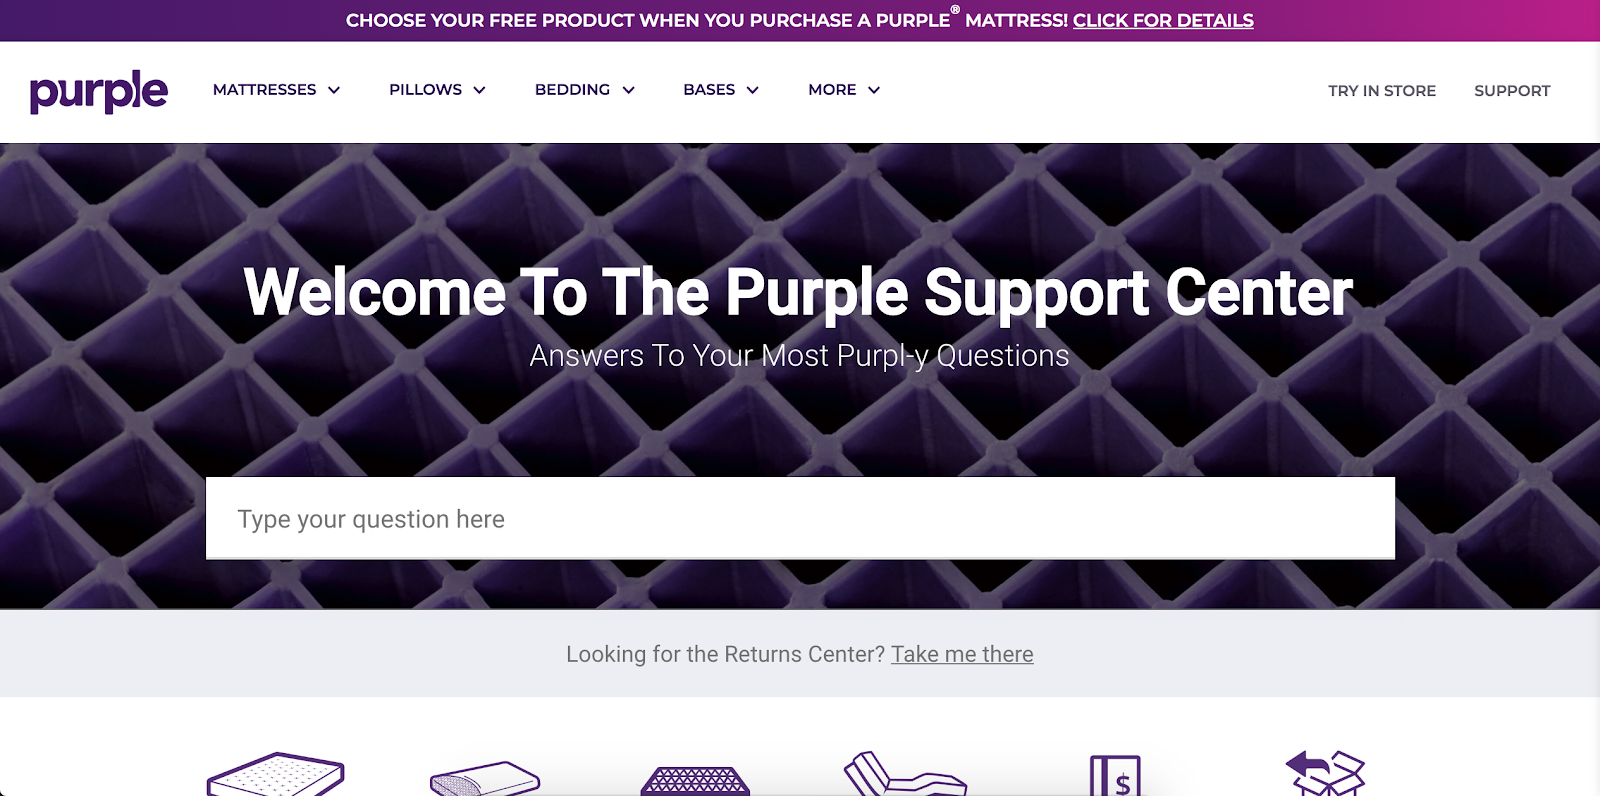 Purple Customer Journey Support Page | Customer Service Philosophy